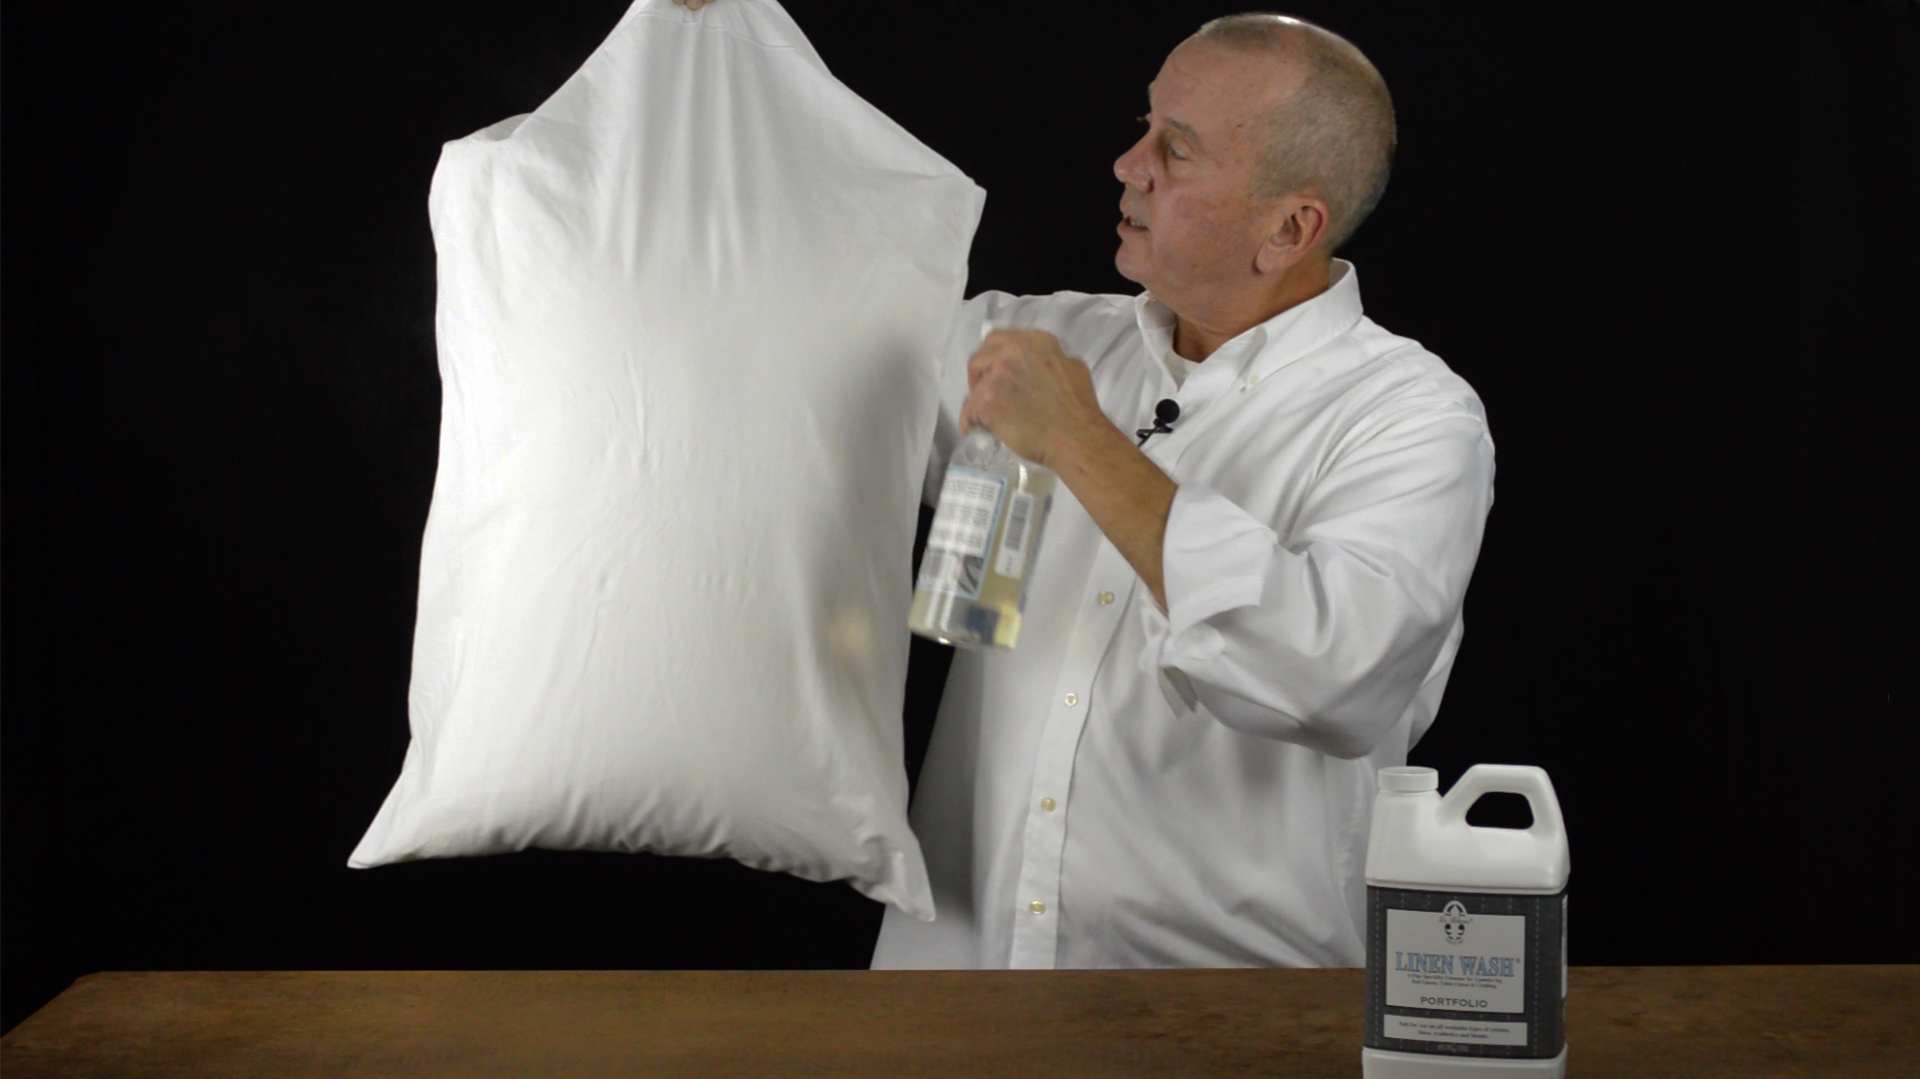 To eaisly get wrinkles out of your linens get a spray bottle of water